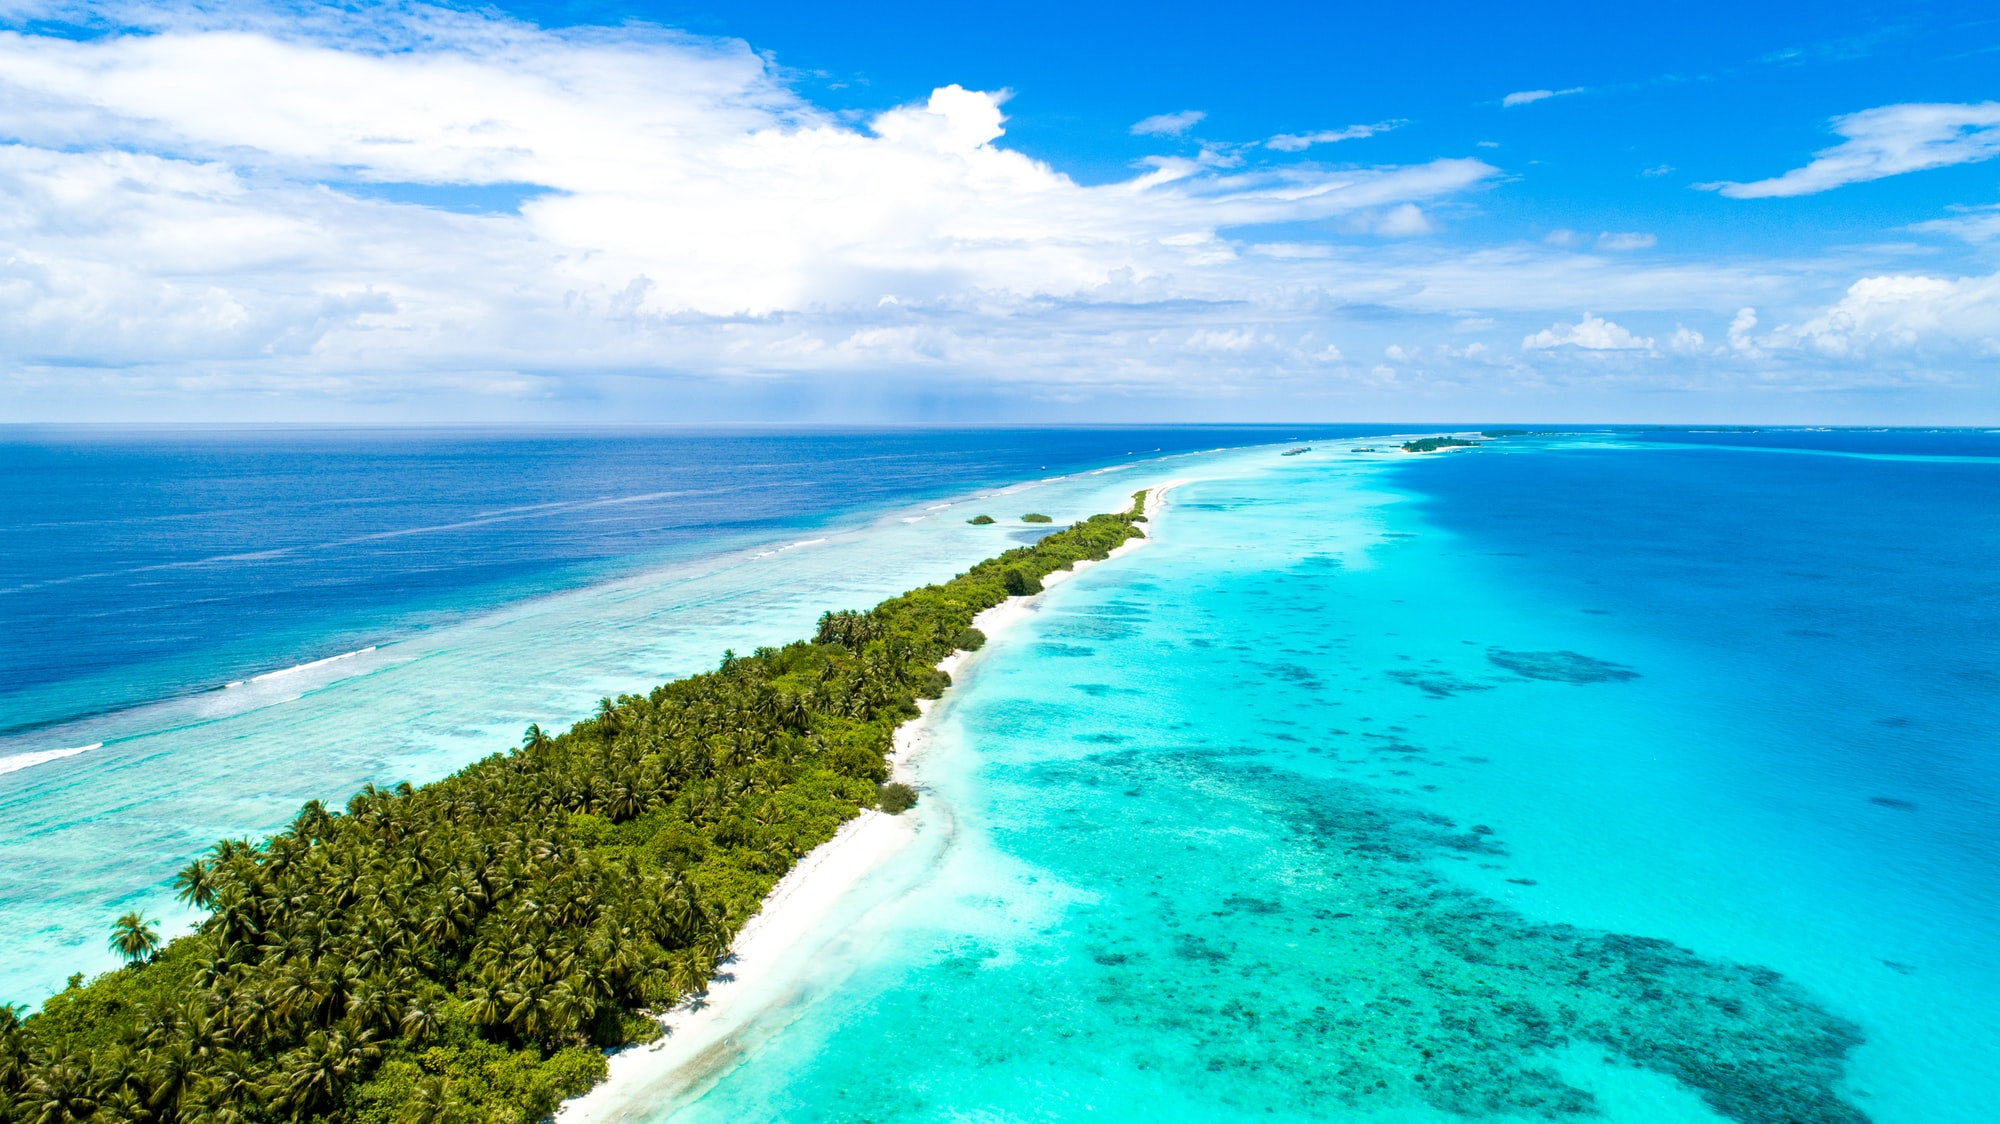 Stunning white-sand beaches and an amazing underwater world make Maldives an obvious choice for a true holiday of a lifetime.